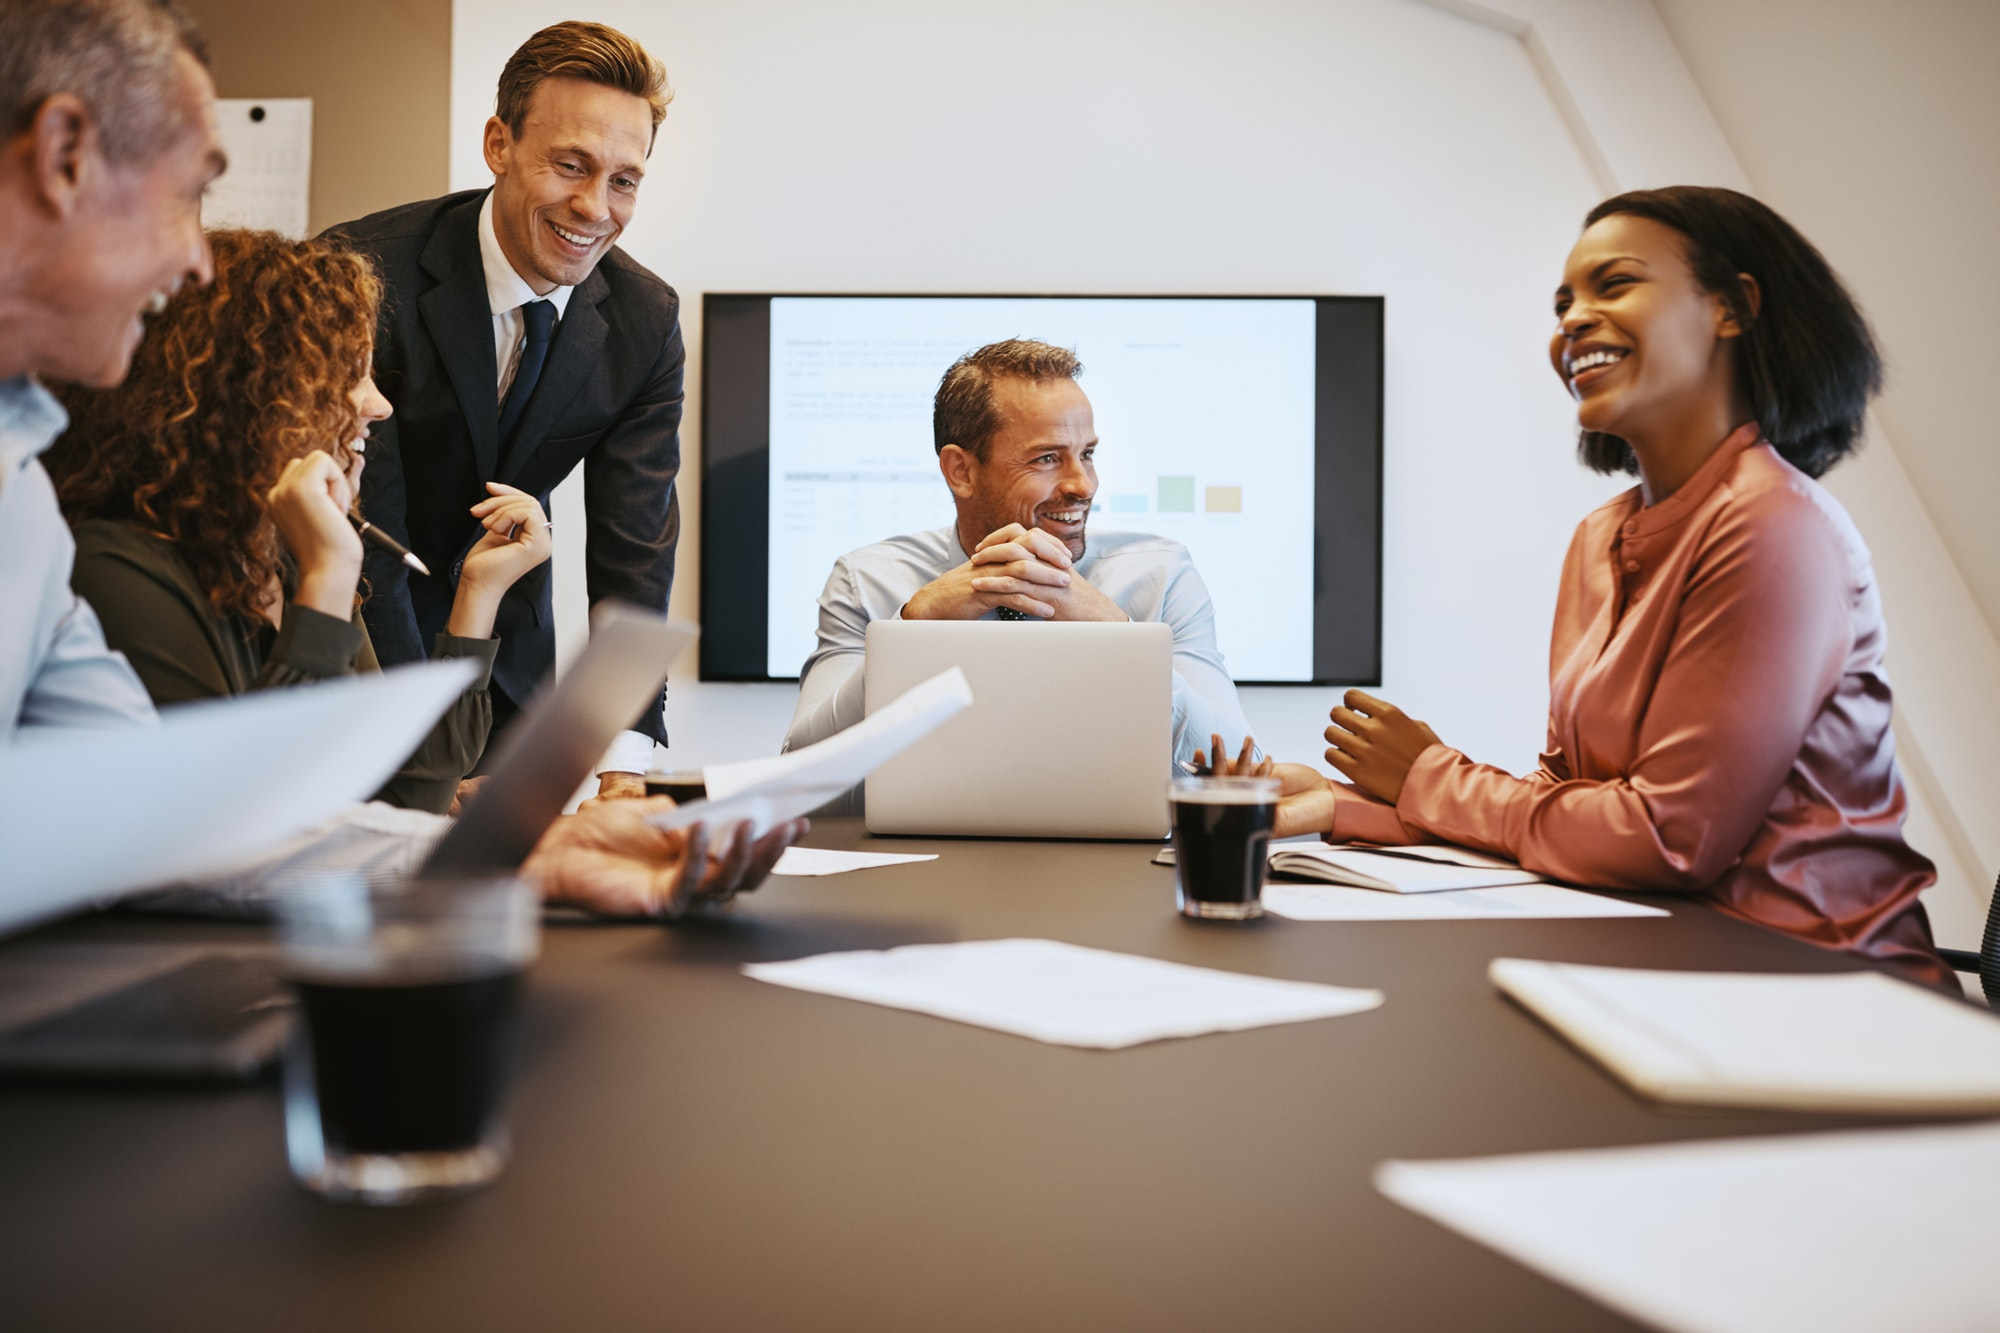 Group of smiling businesspeople discussing work together during a meeting